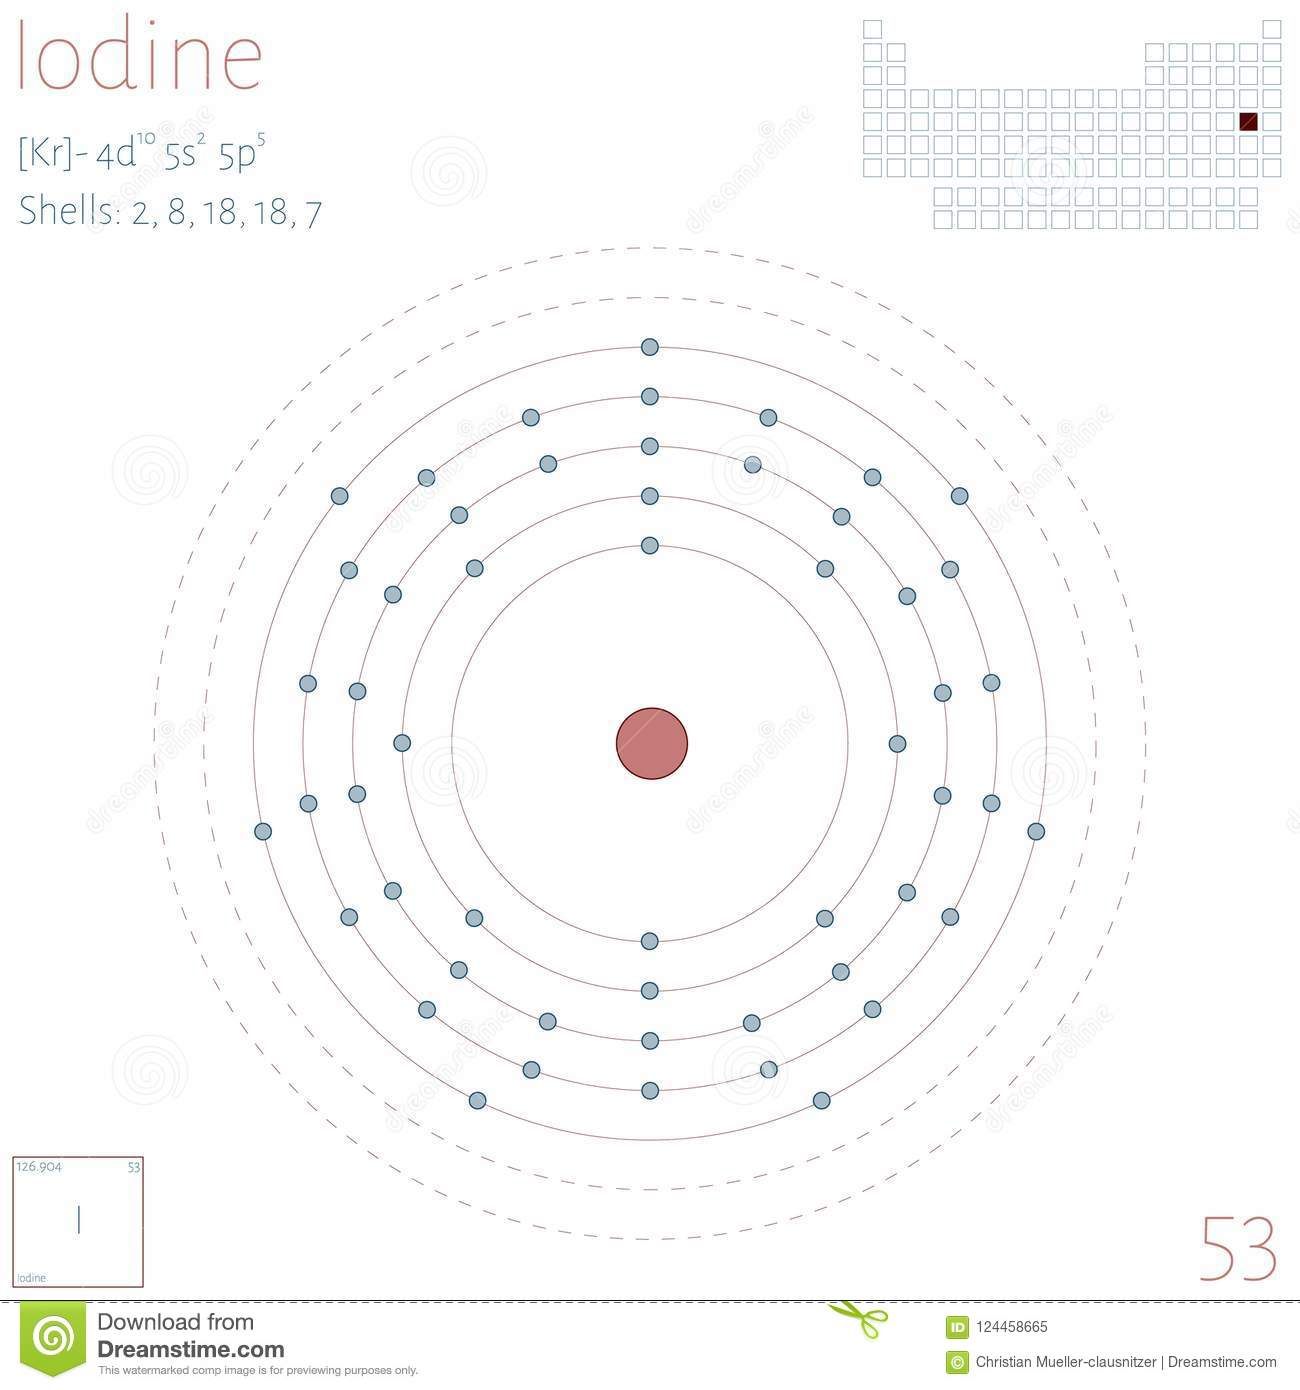 hight resolution of infographic of the element of iodine